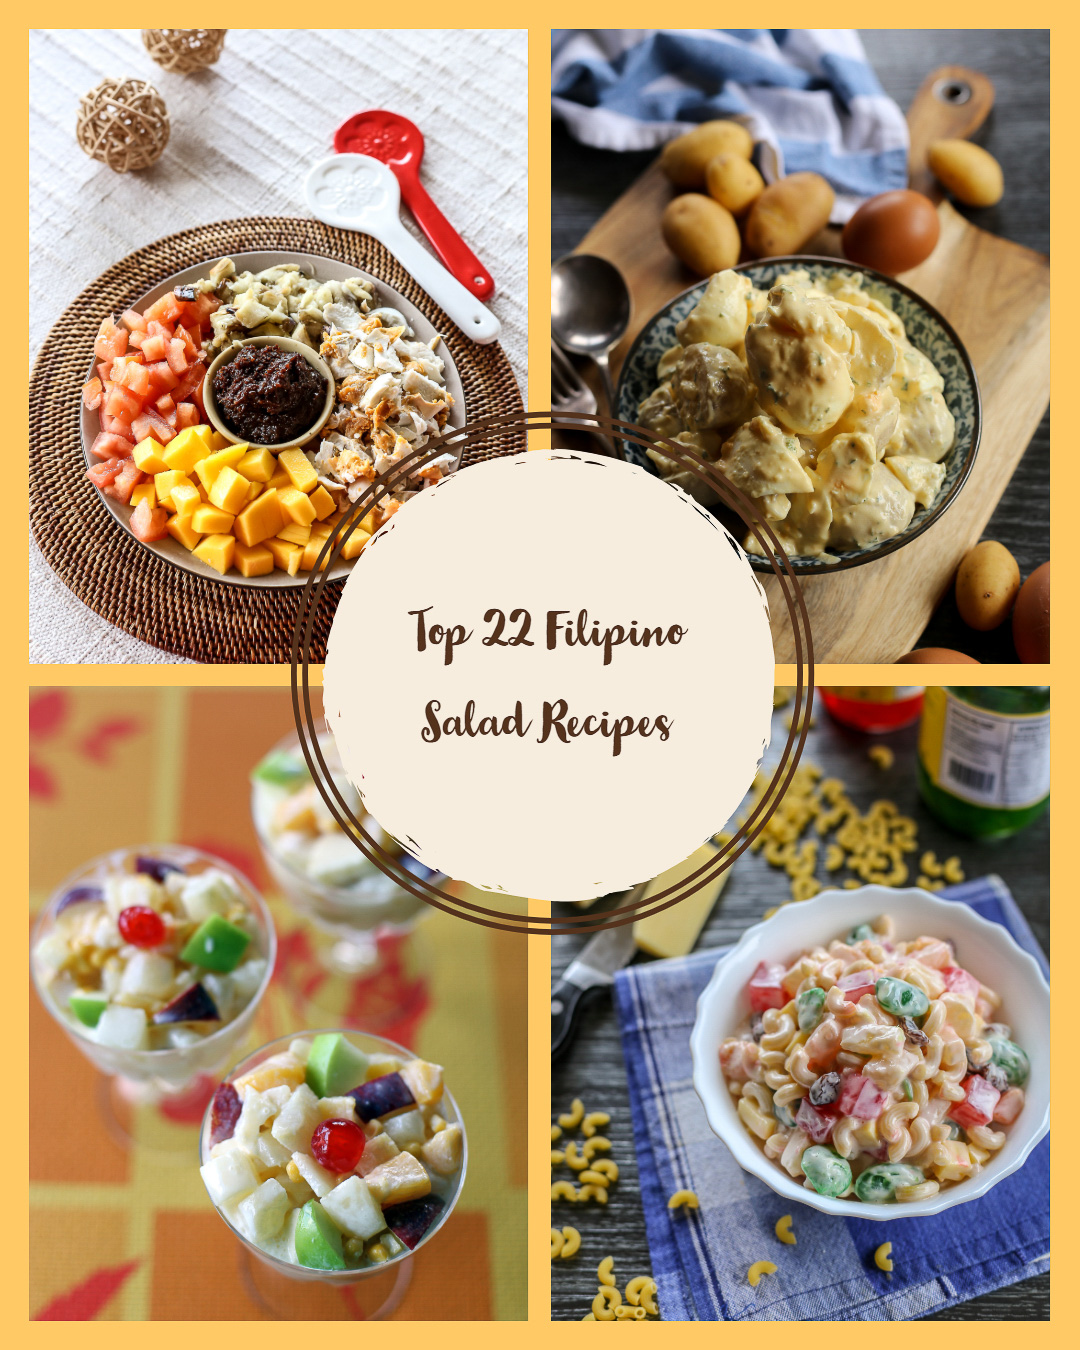 Top 22 Filipino Salad Recipes - Ang Sarap